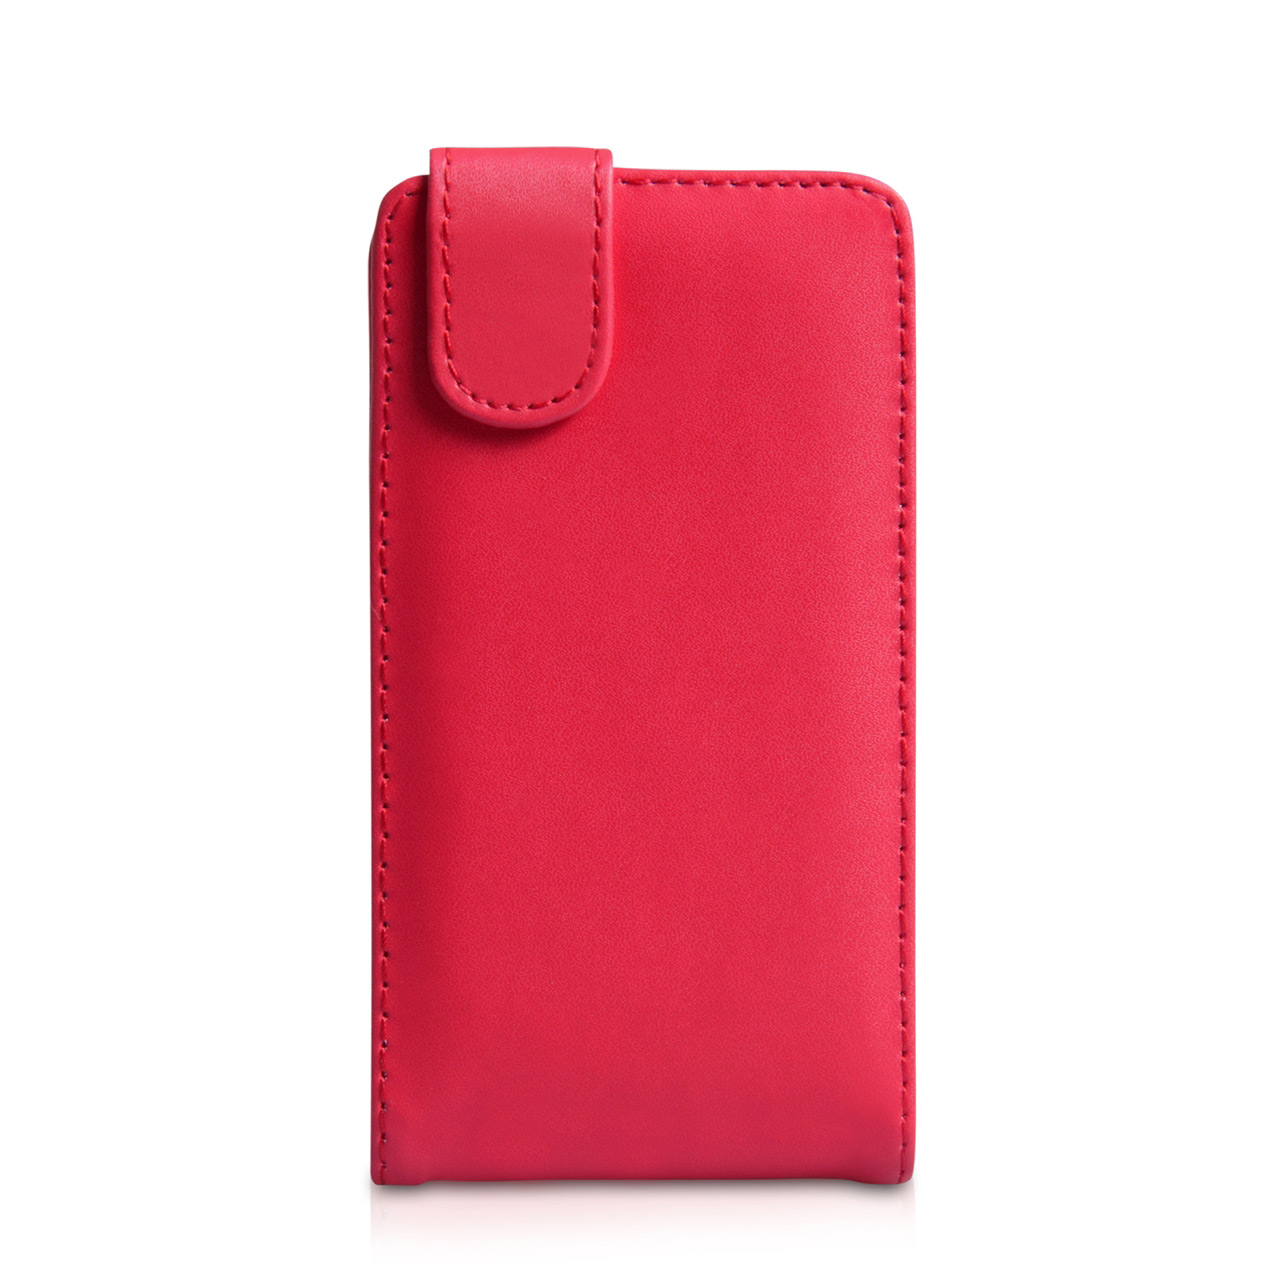 YouSave Accessories Nokia Lumia 1020 Leather-Effect Flip Case - Red